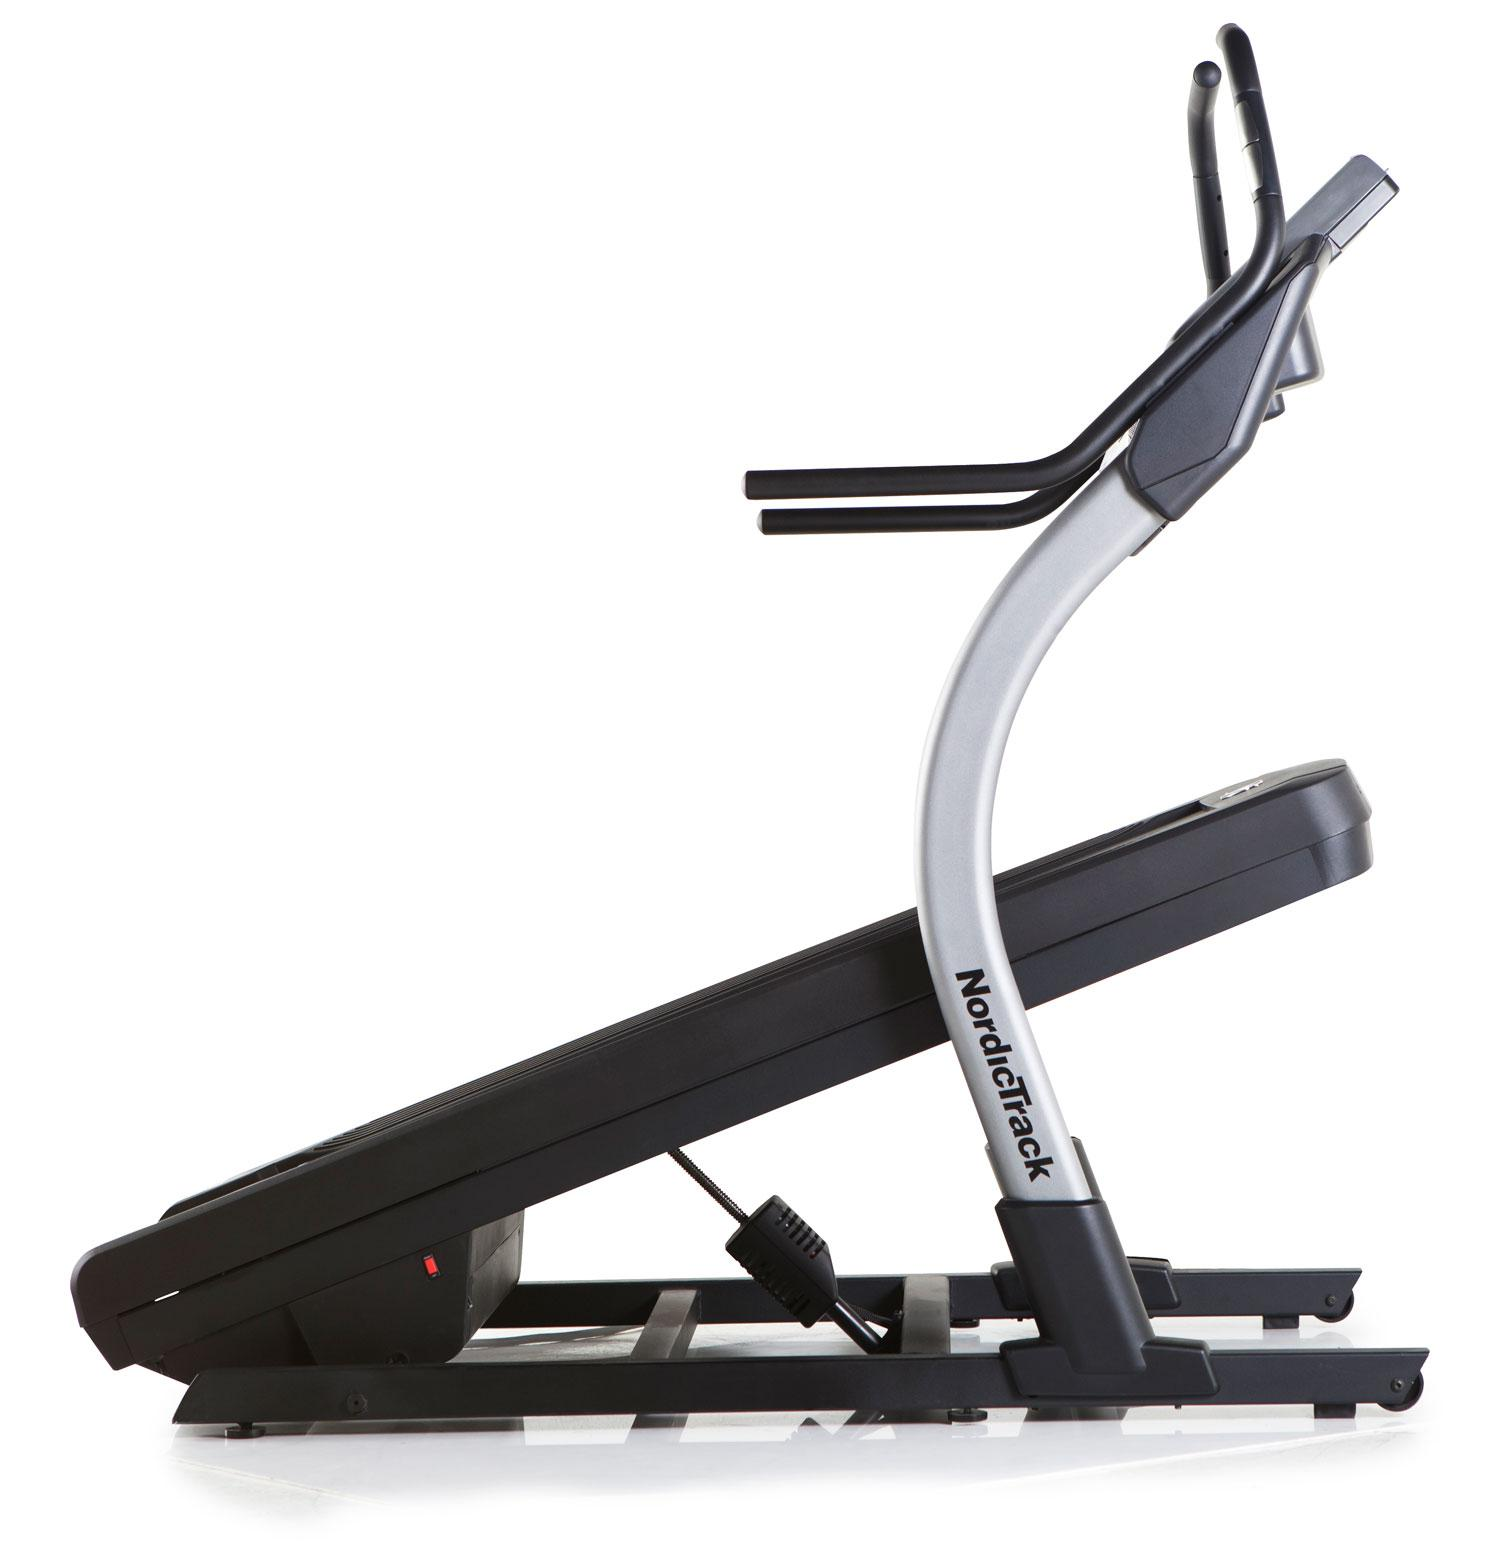 Беговая дорожка NordicTrack Incline Trainer X9i (NETL29714), фото №2